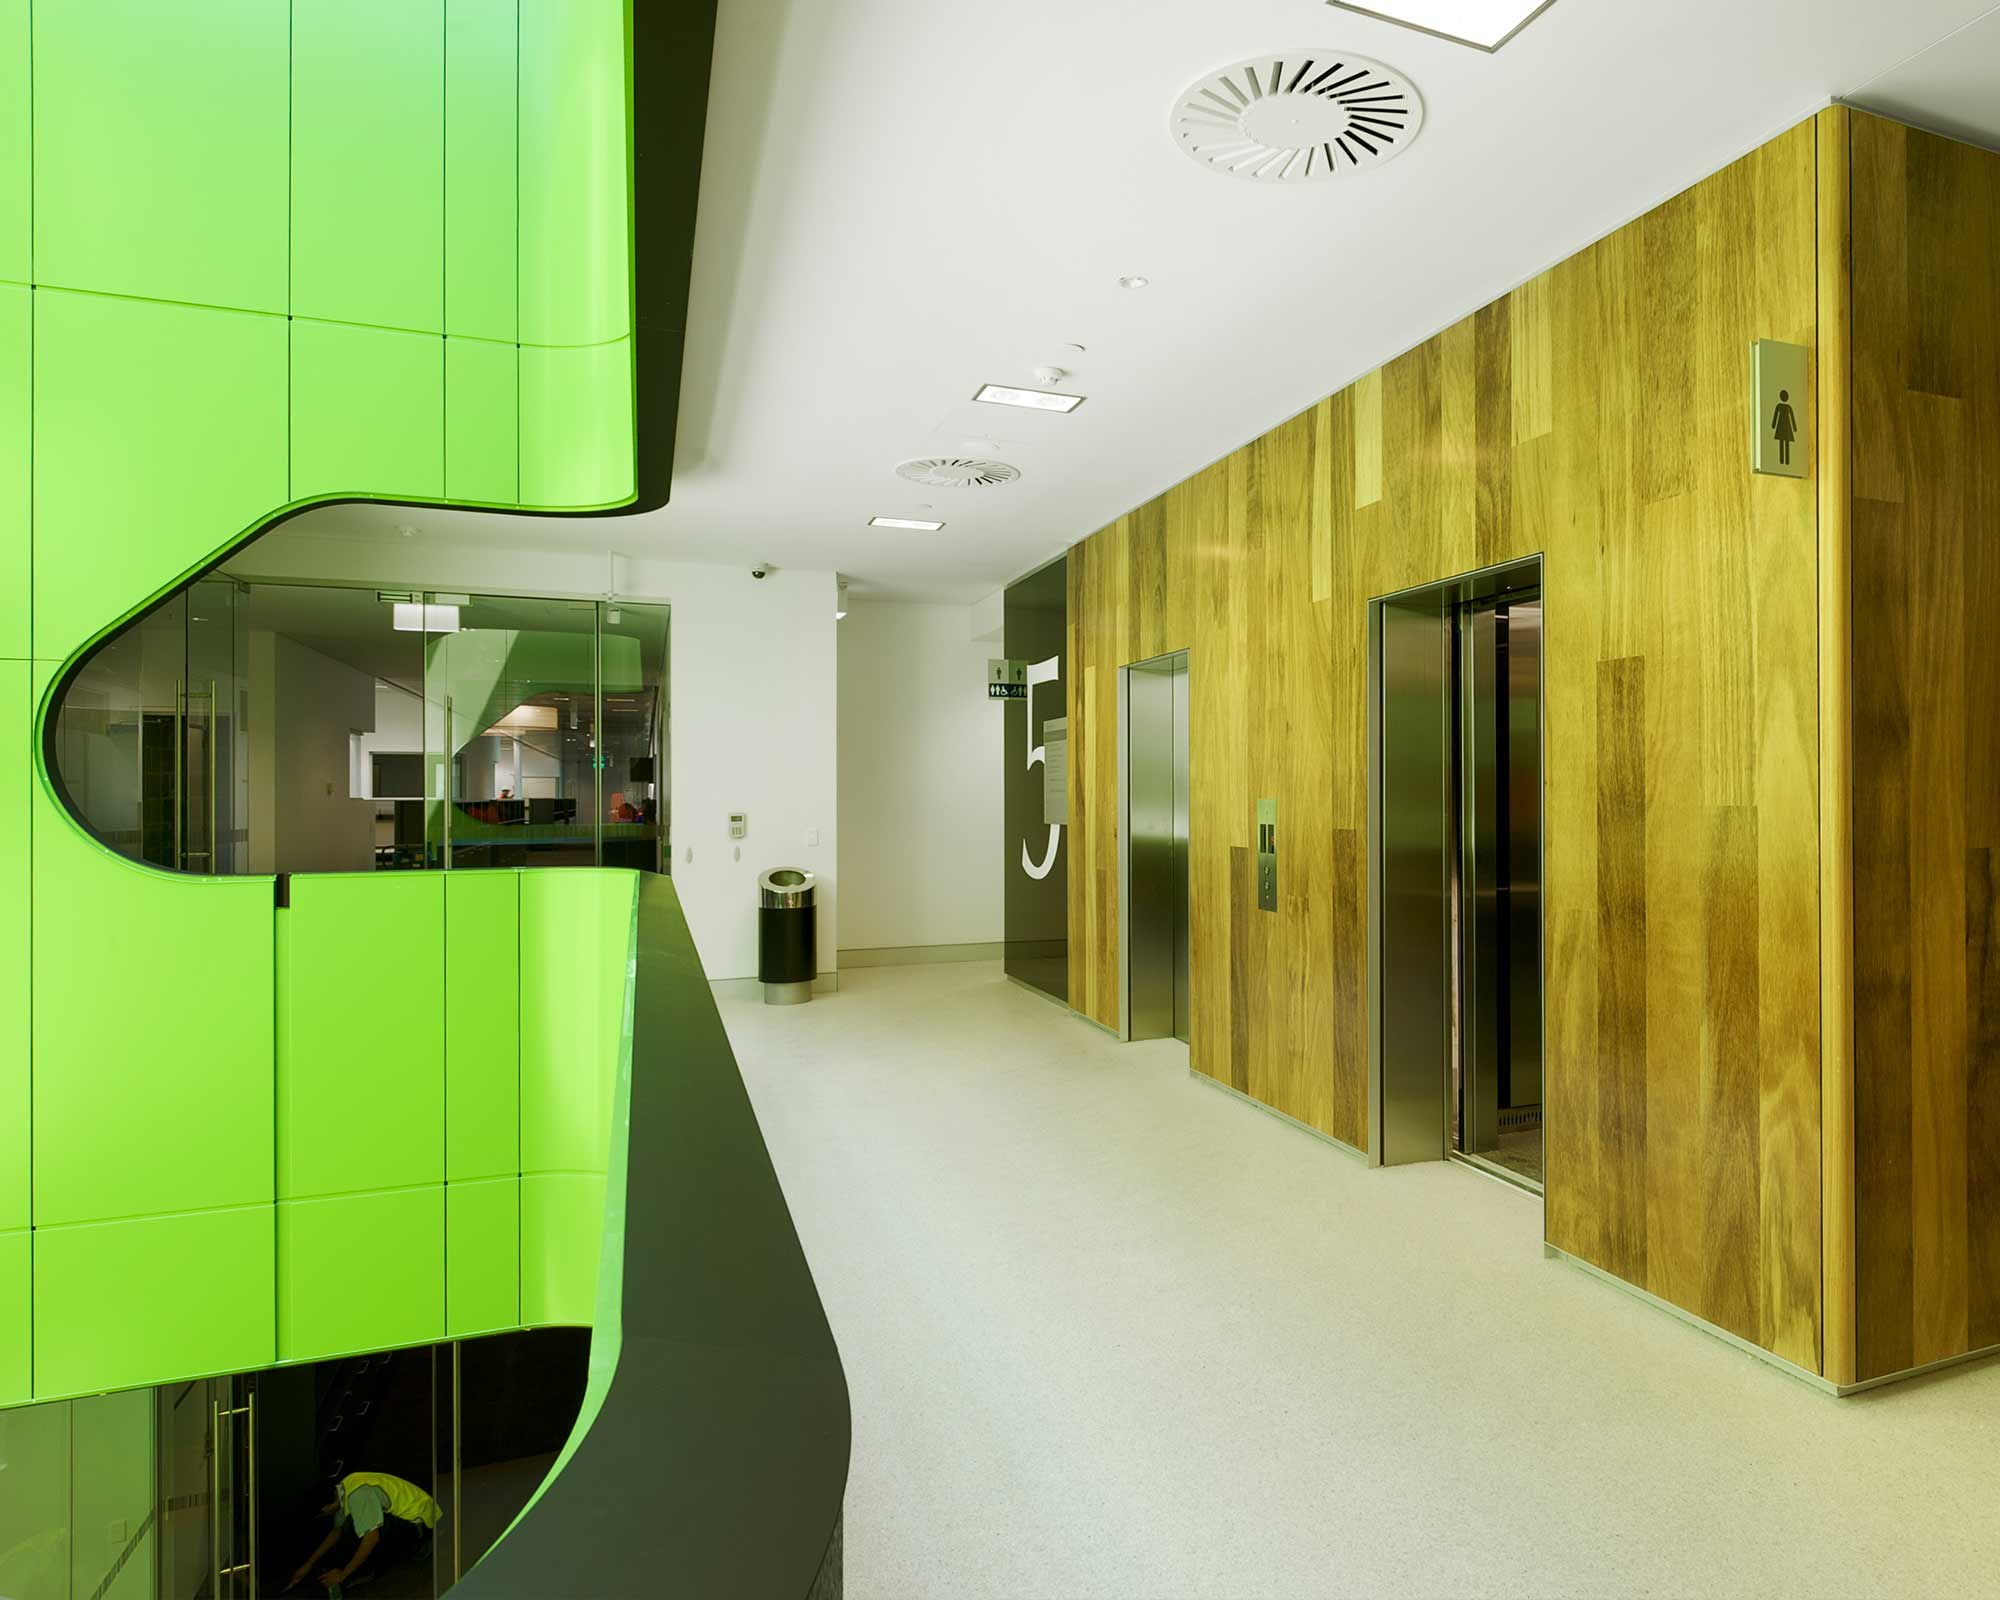 UNSW-C25-Lowy-Cancer-Research-Facility-4